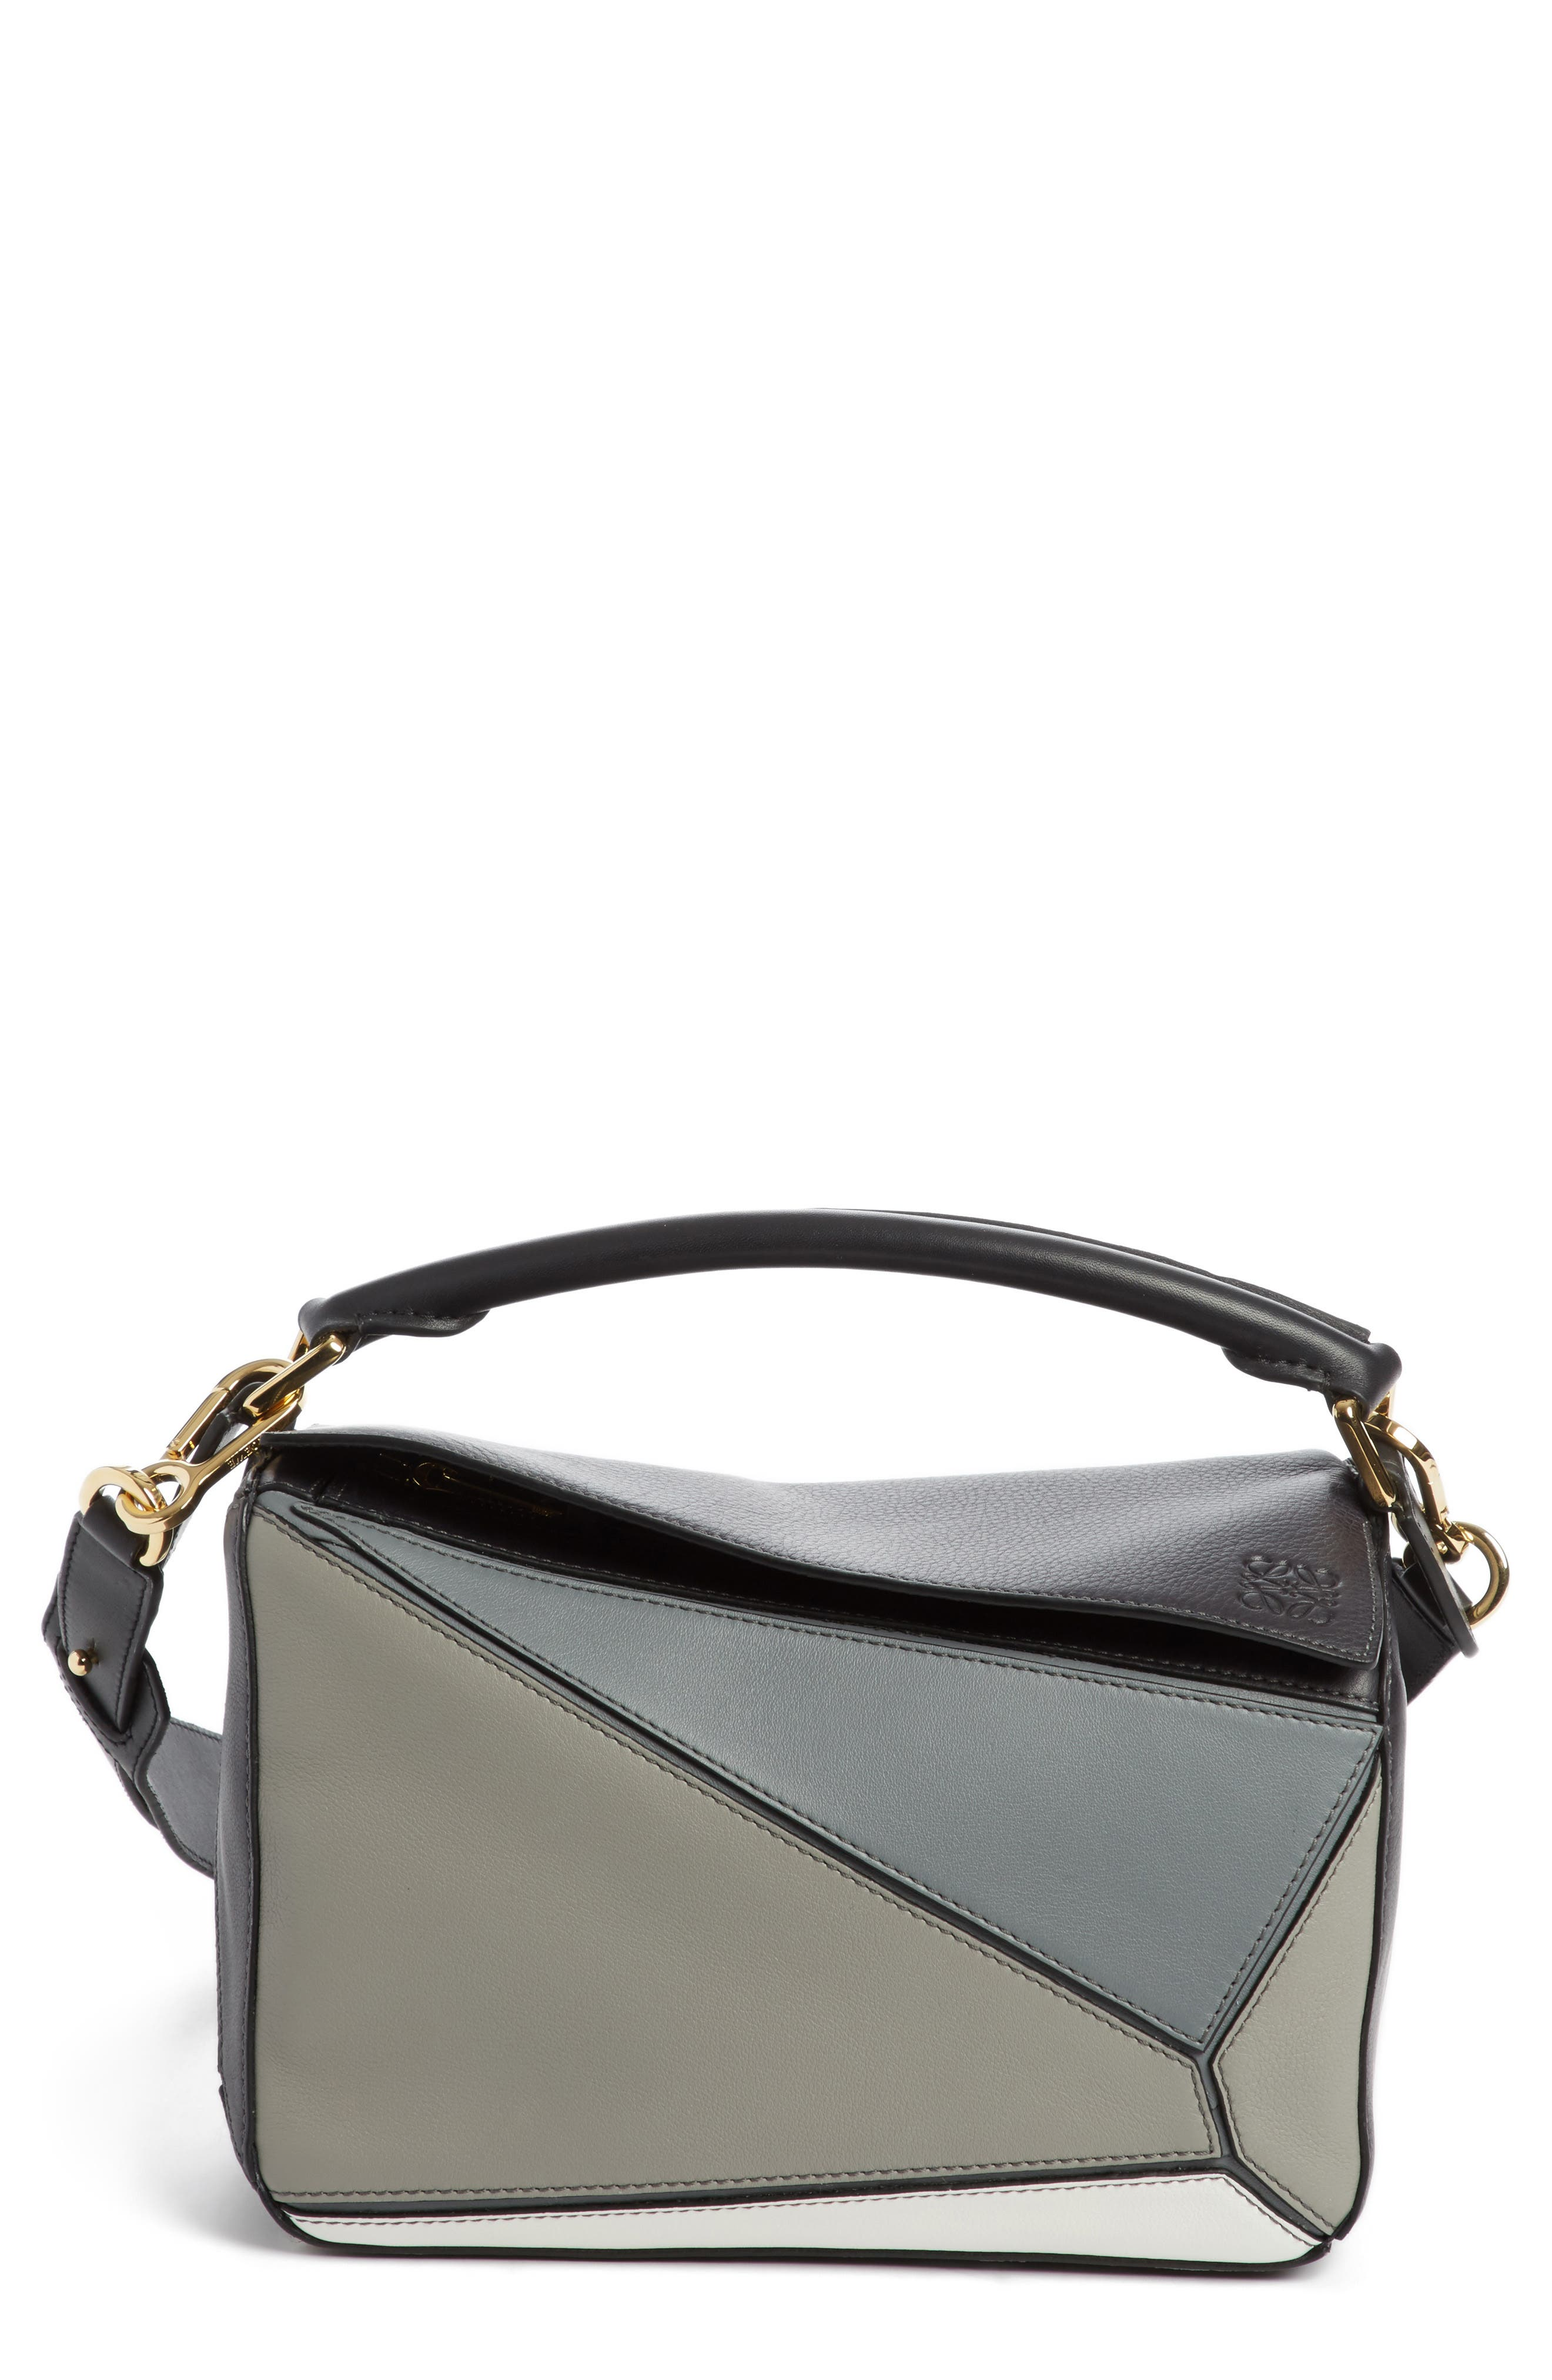 Small Puzzle Colorblock Calfskin Leather Bag,                         Main,                         color, Grey Multi Tone